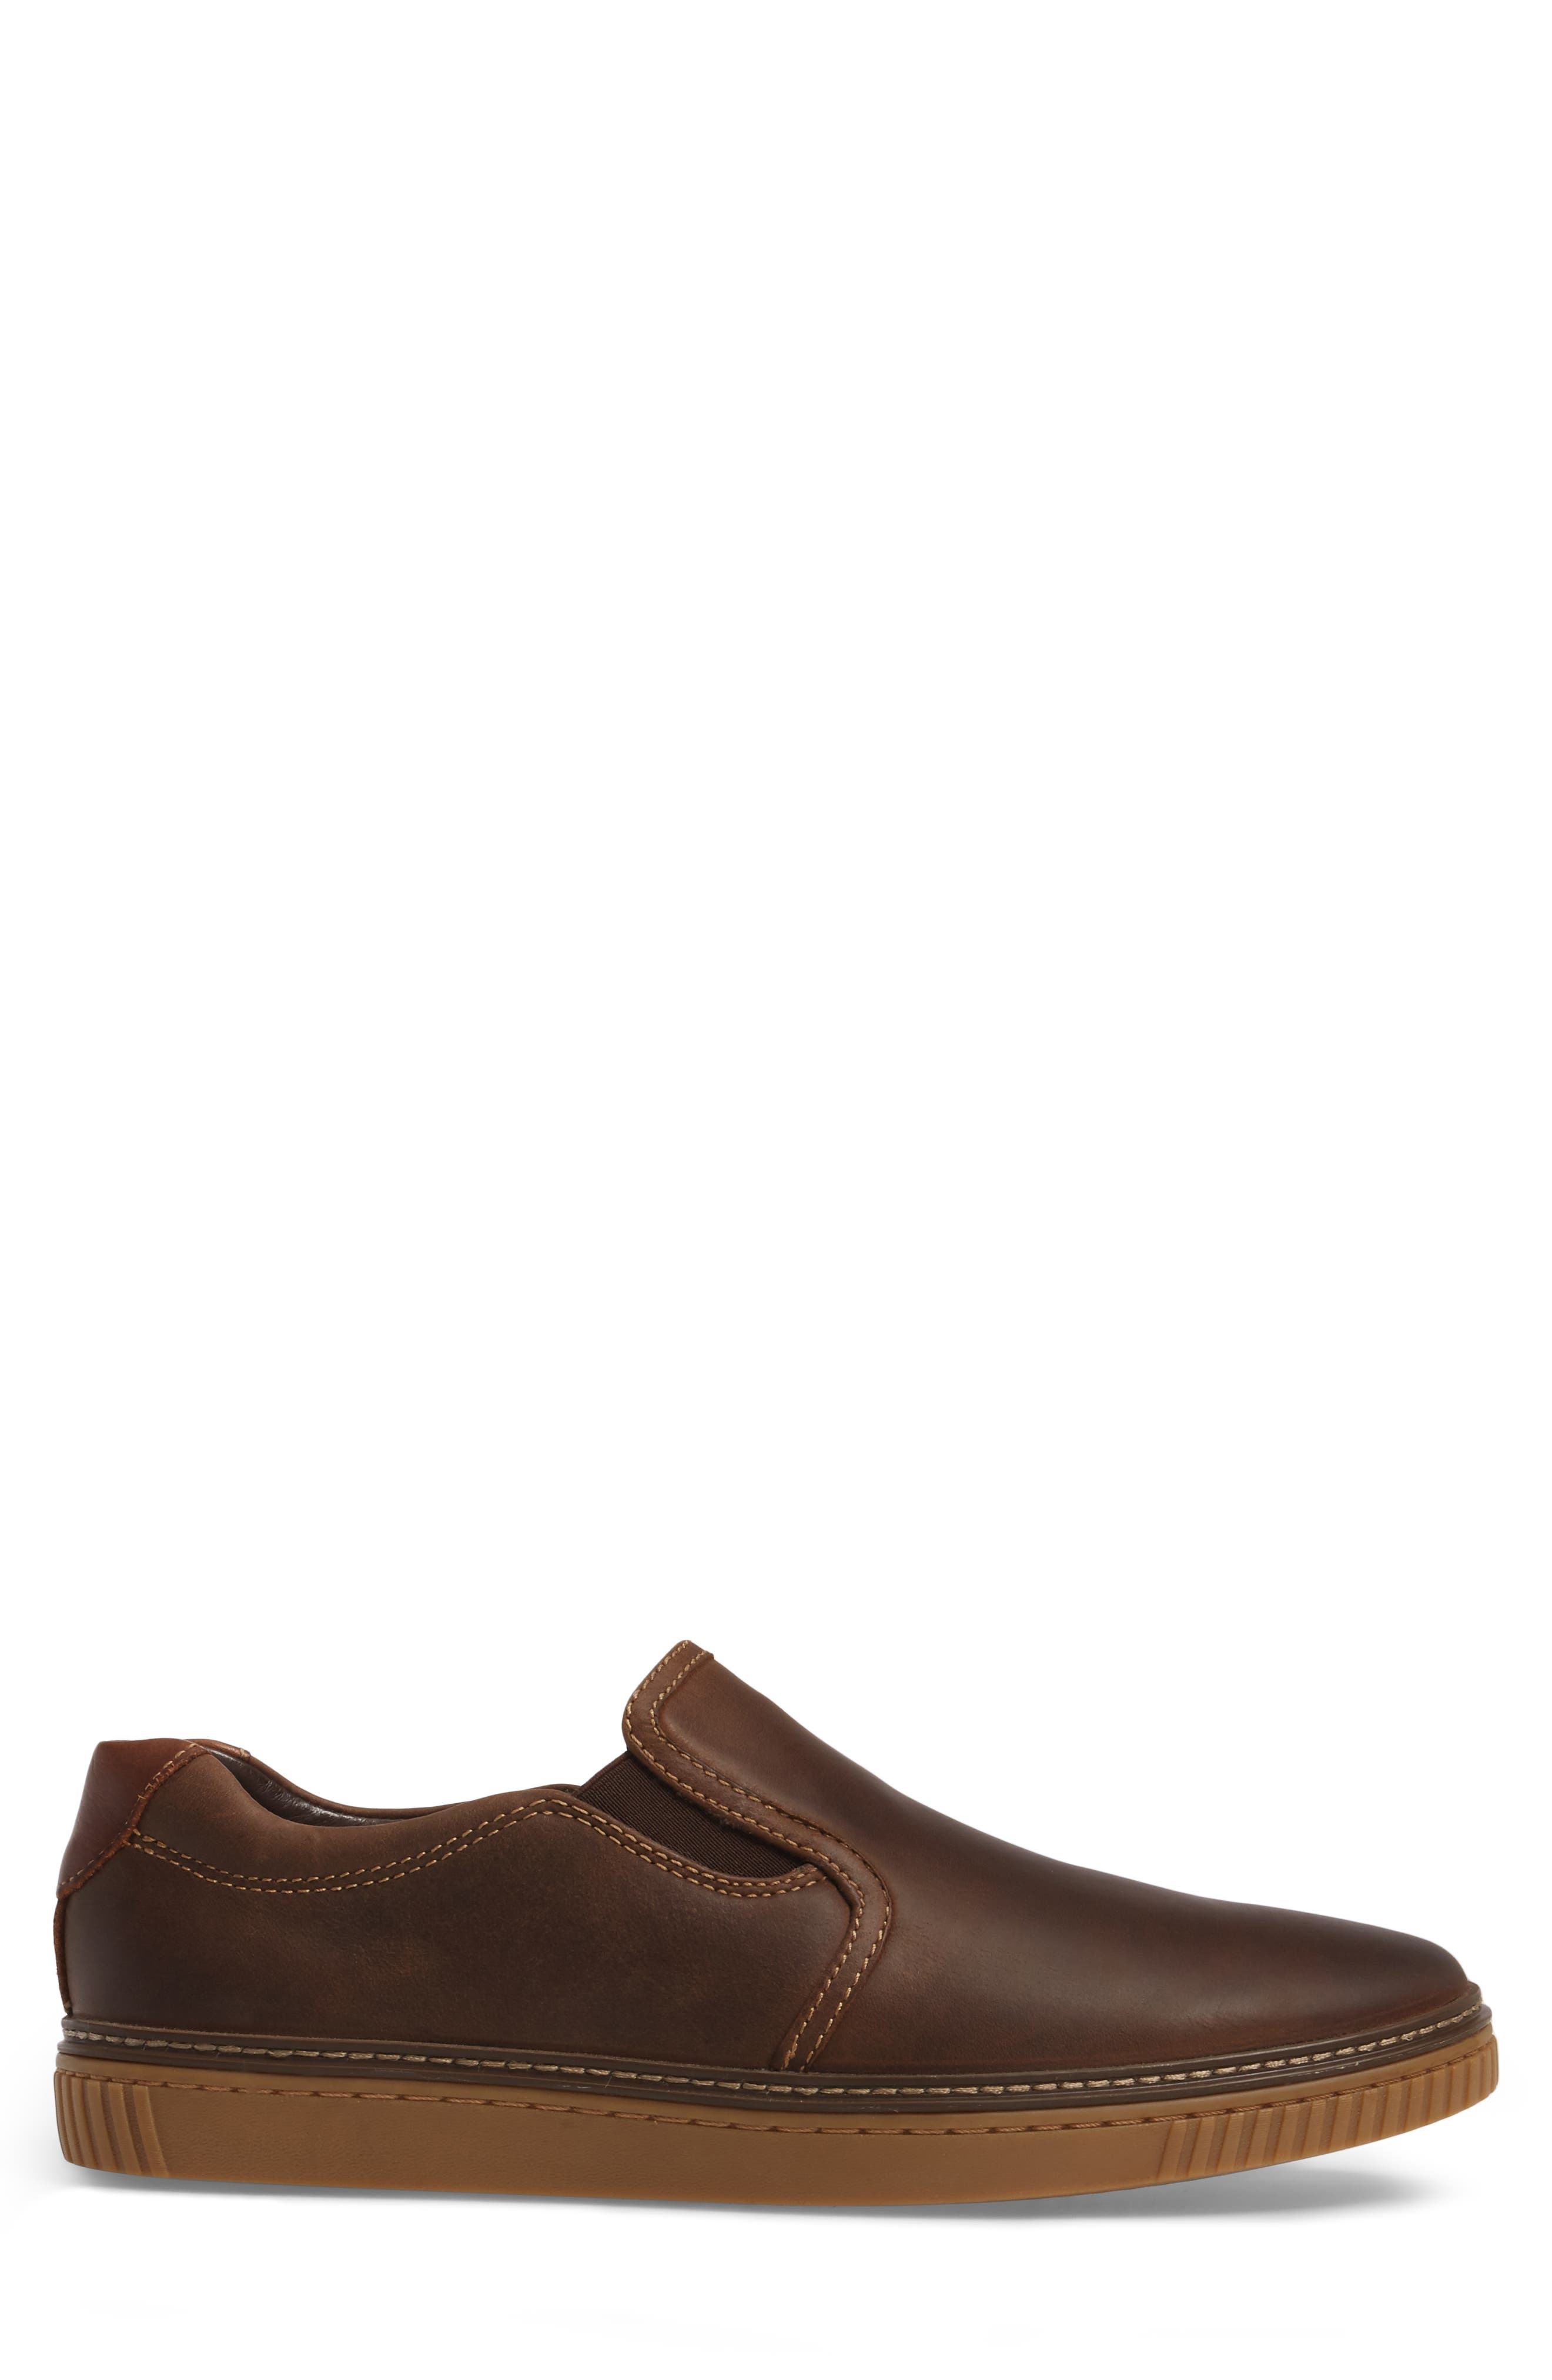 Wallace Slip-On Sneaker,                             Alternate thumbnail 3, color,                             Brown